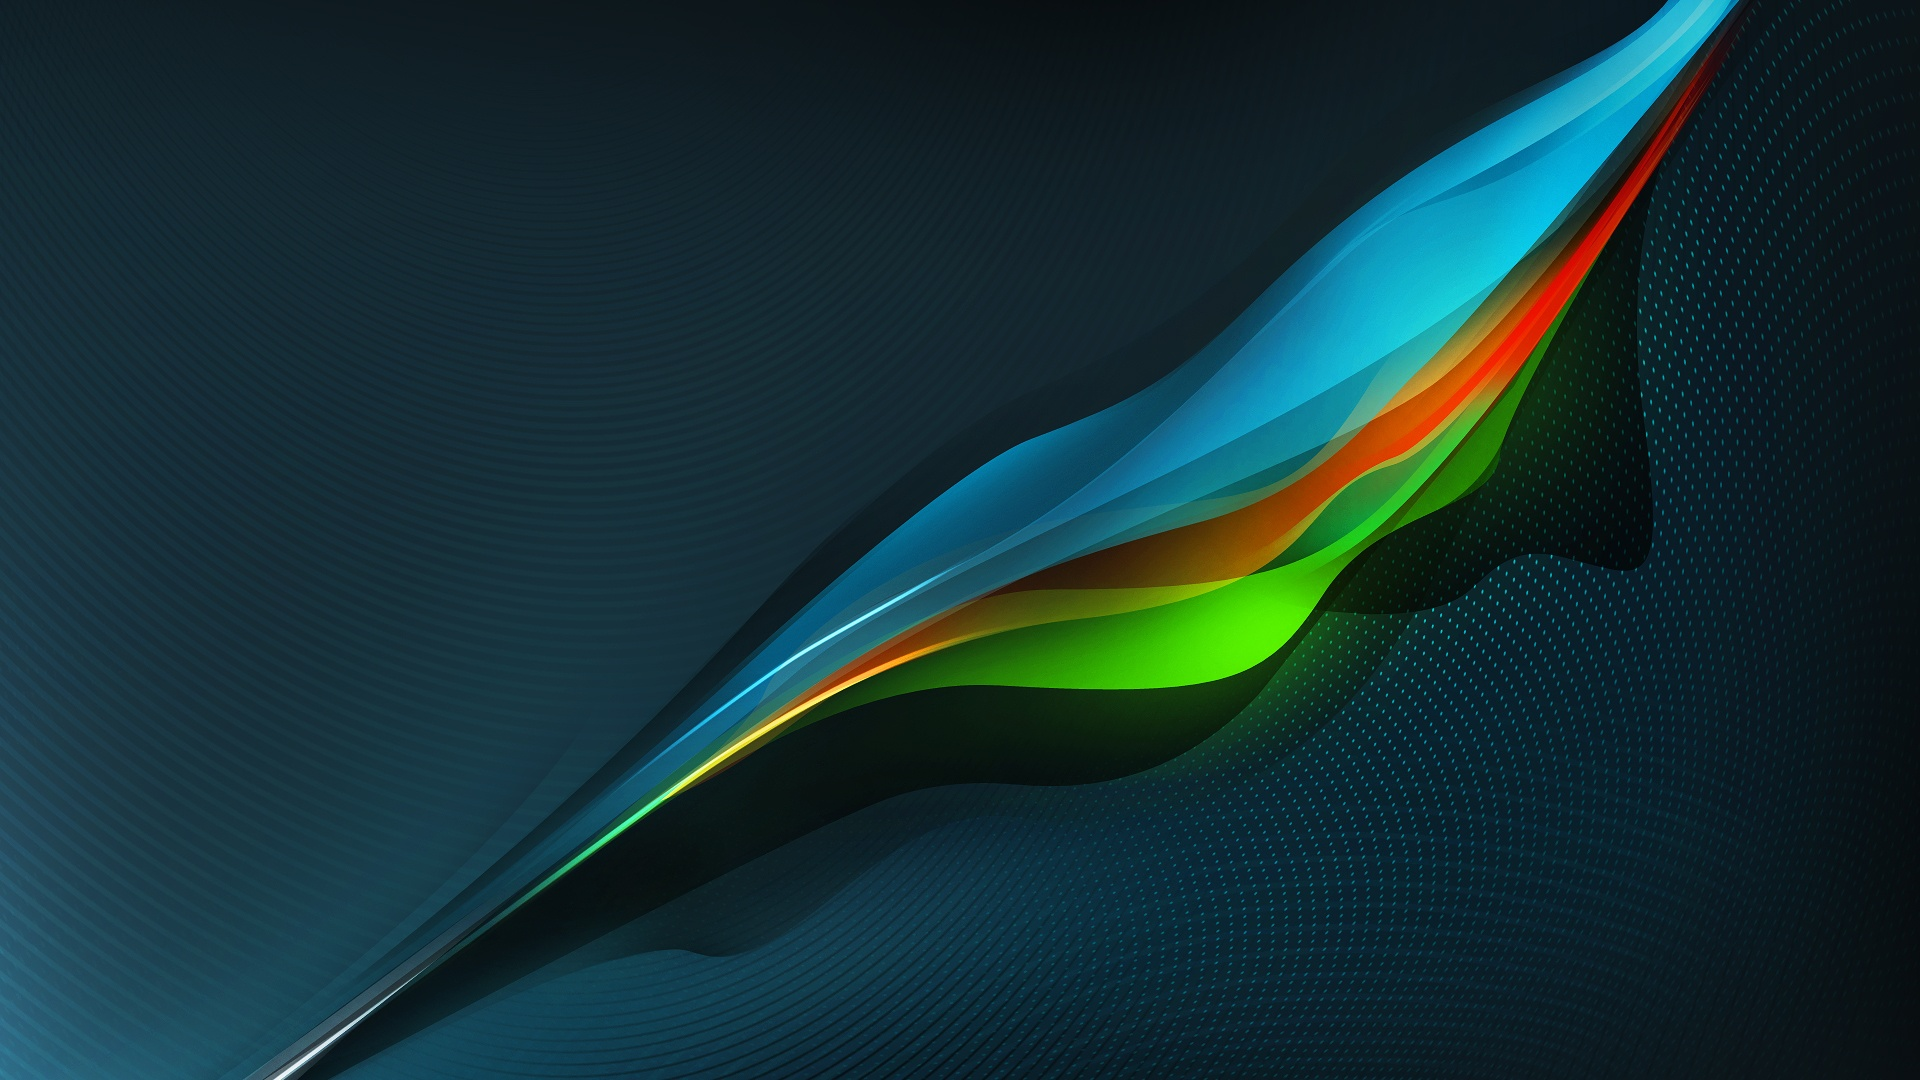 abstract wallpapers hd curves 3